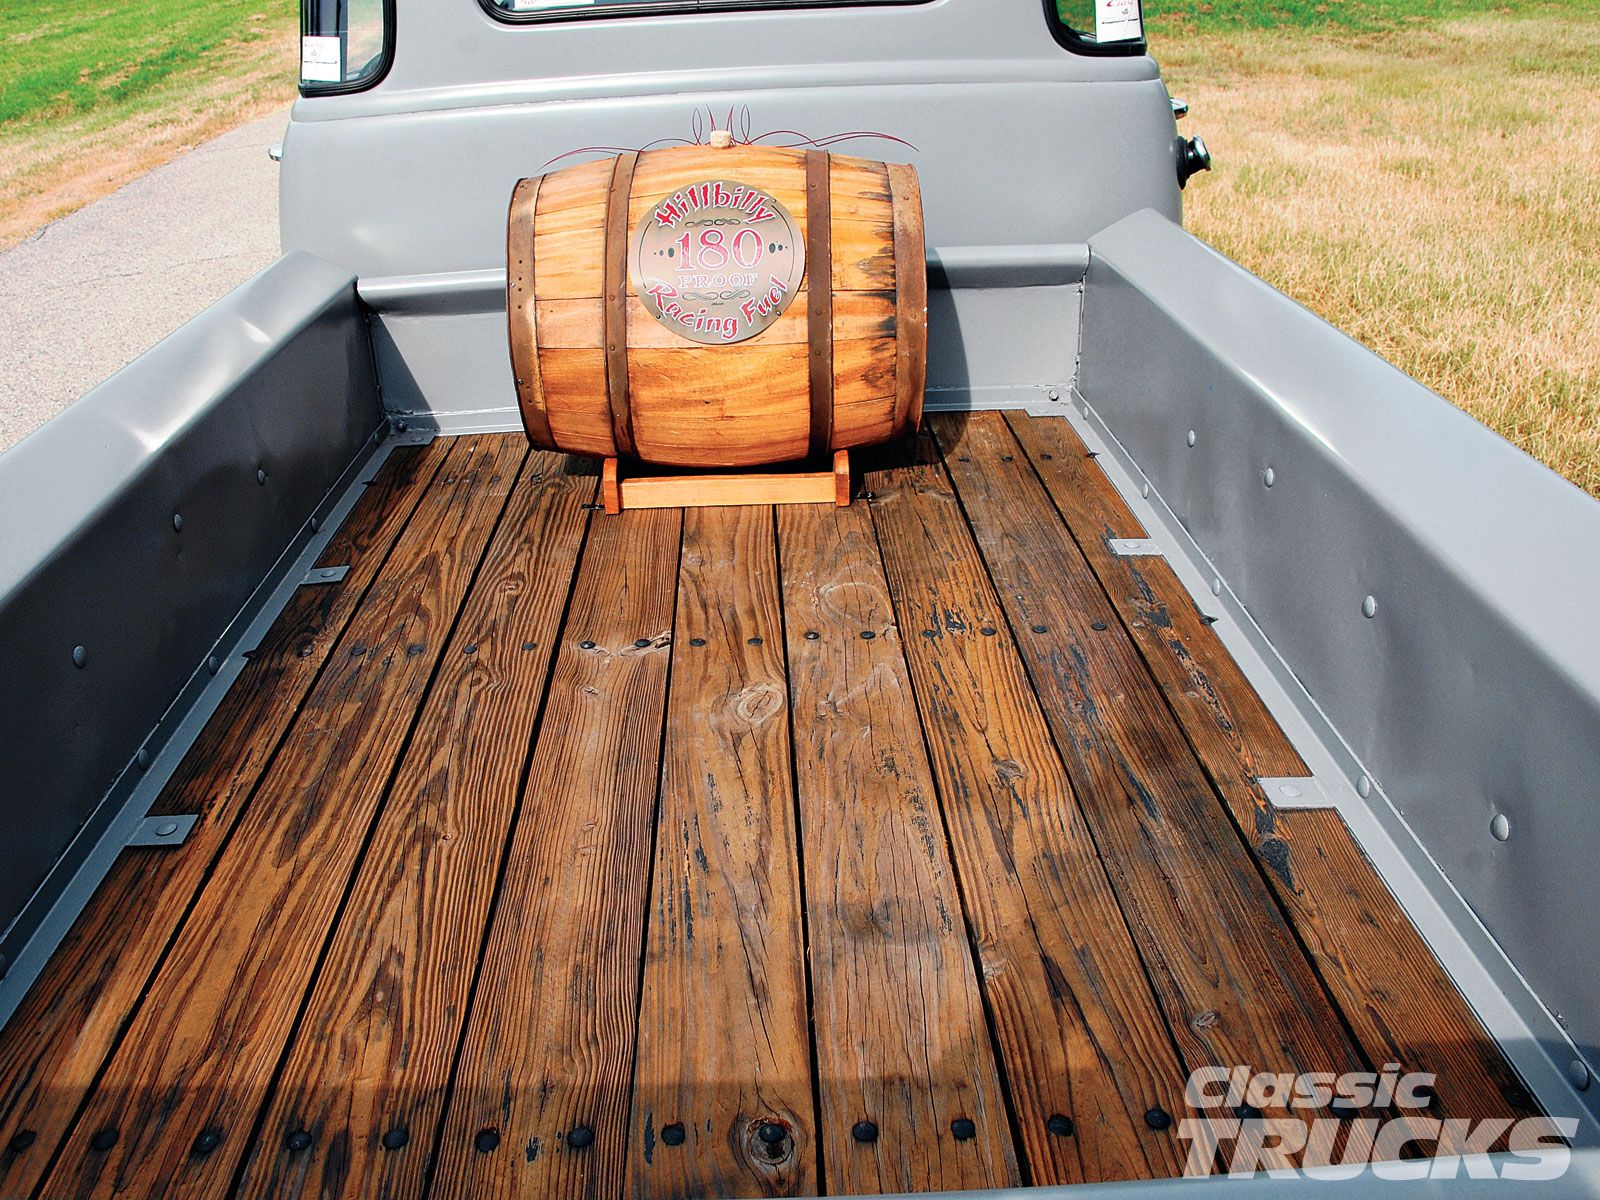 Truck Bed Storage I Think I Would Use A Steamer Trunk Instead Of A Barrel Truck Bed Chevrolet Trucks Classic Truck